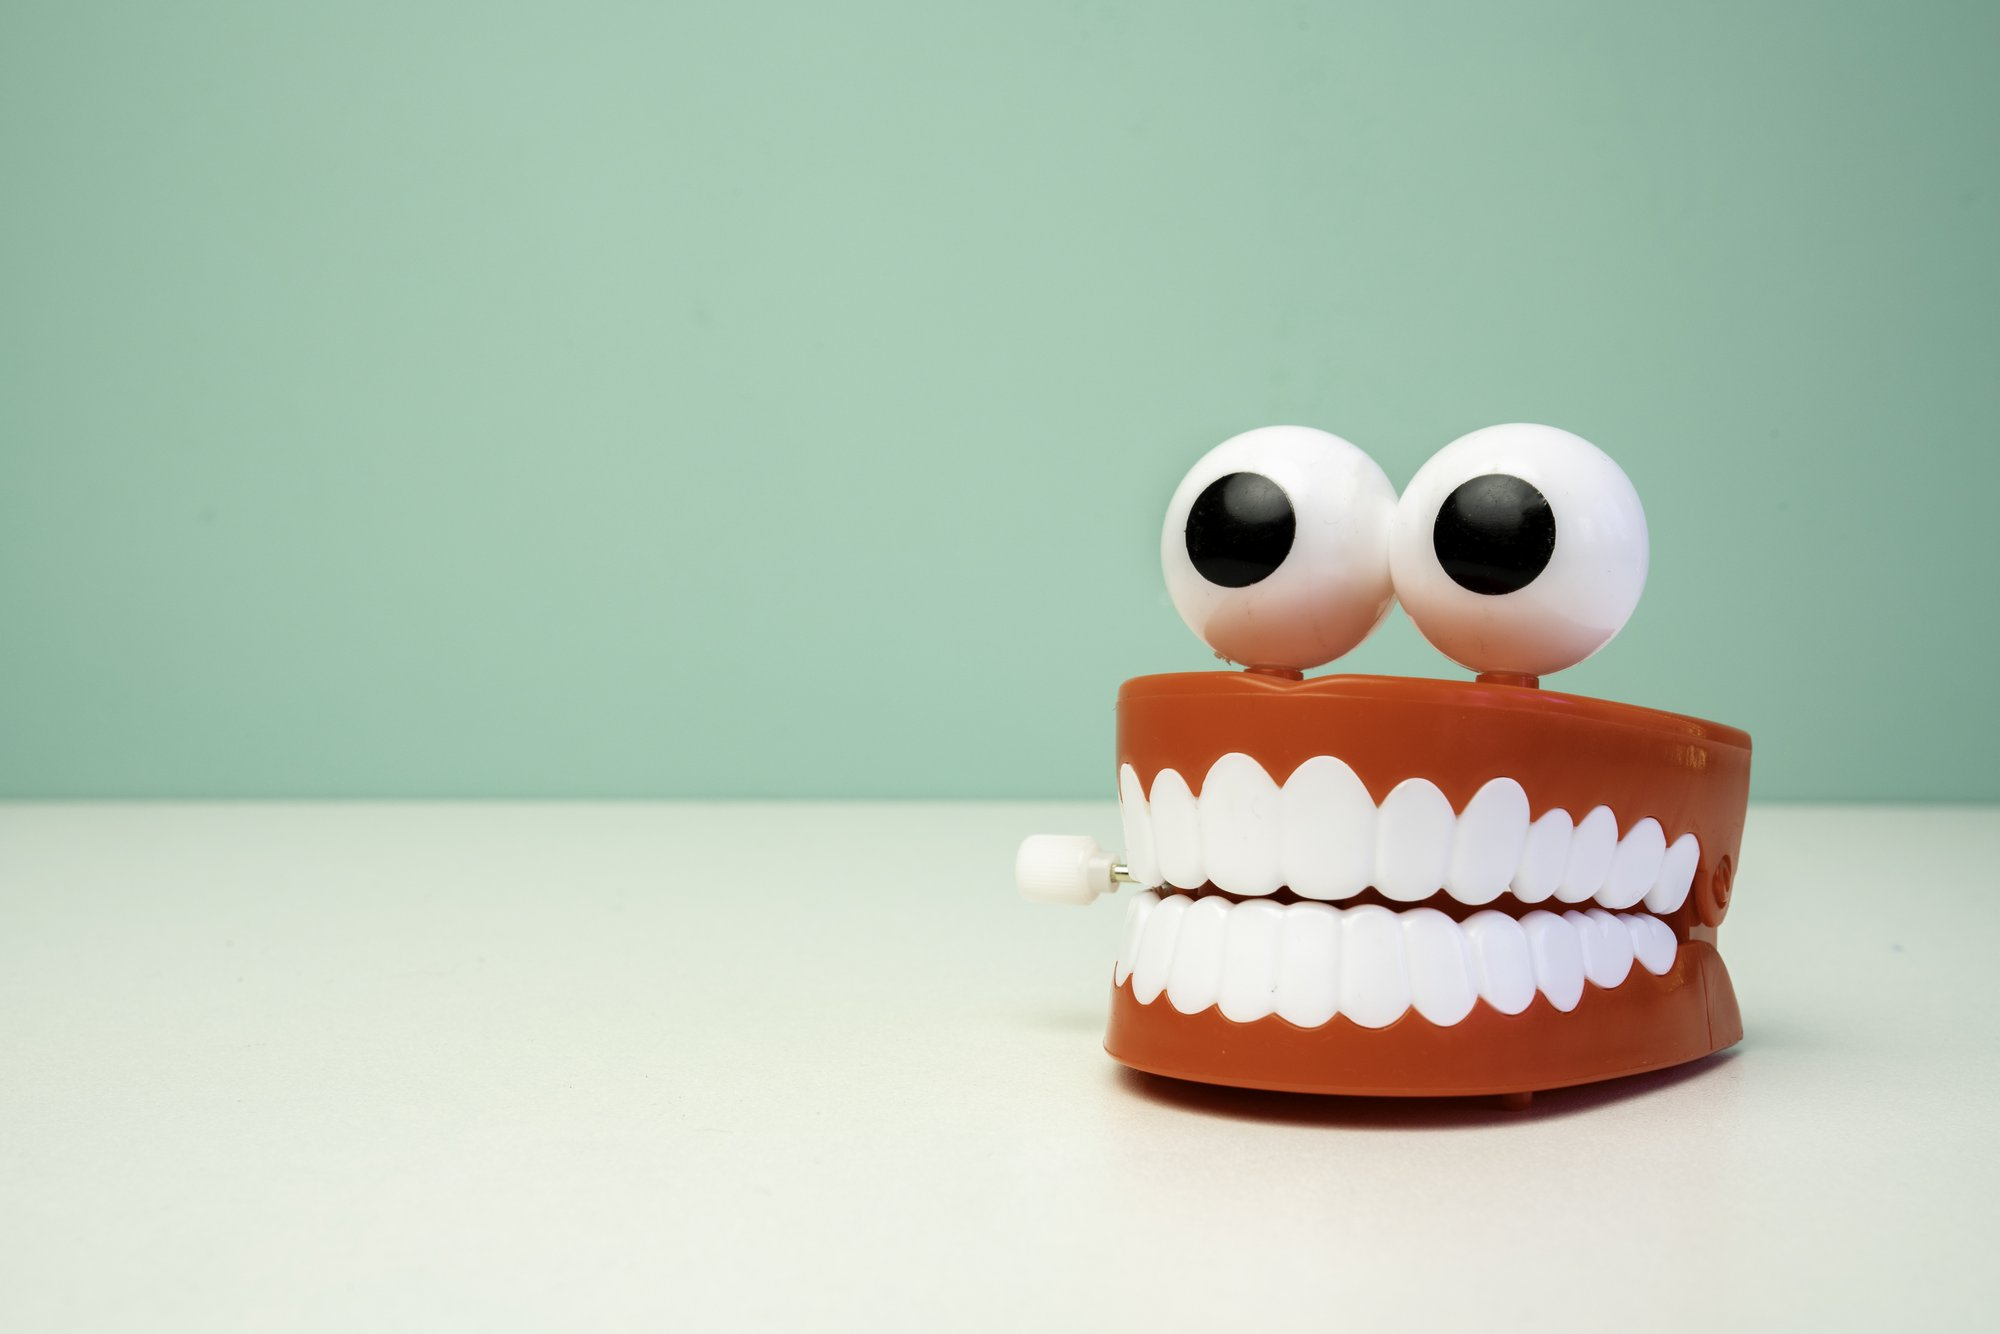 10 Weird Things People Used to Do With Their Teeth